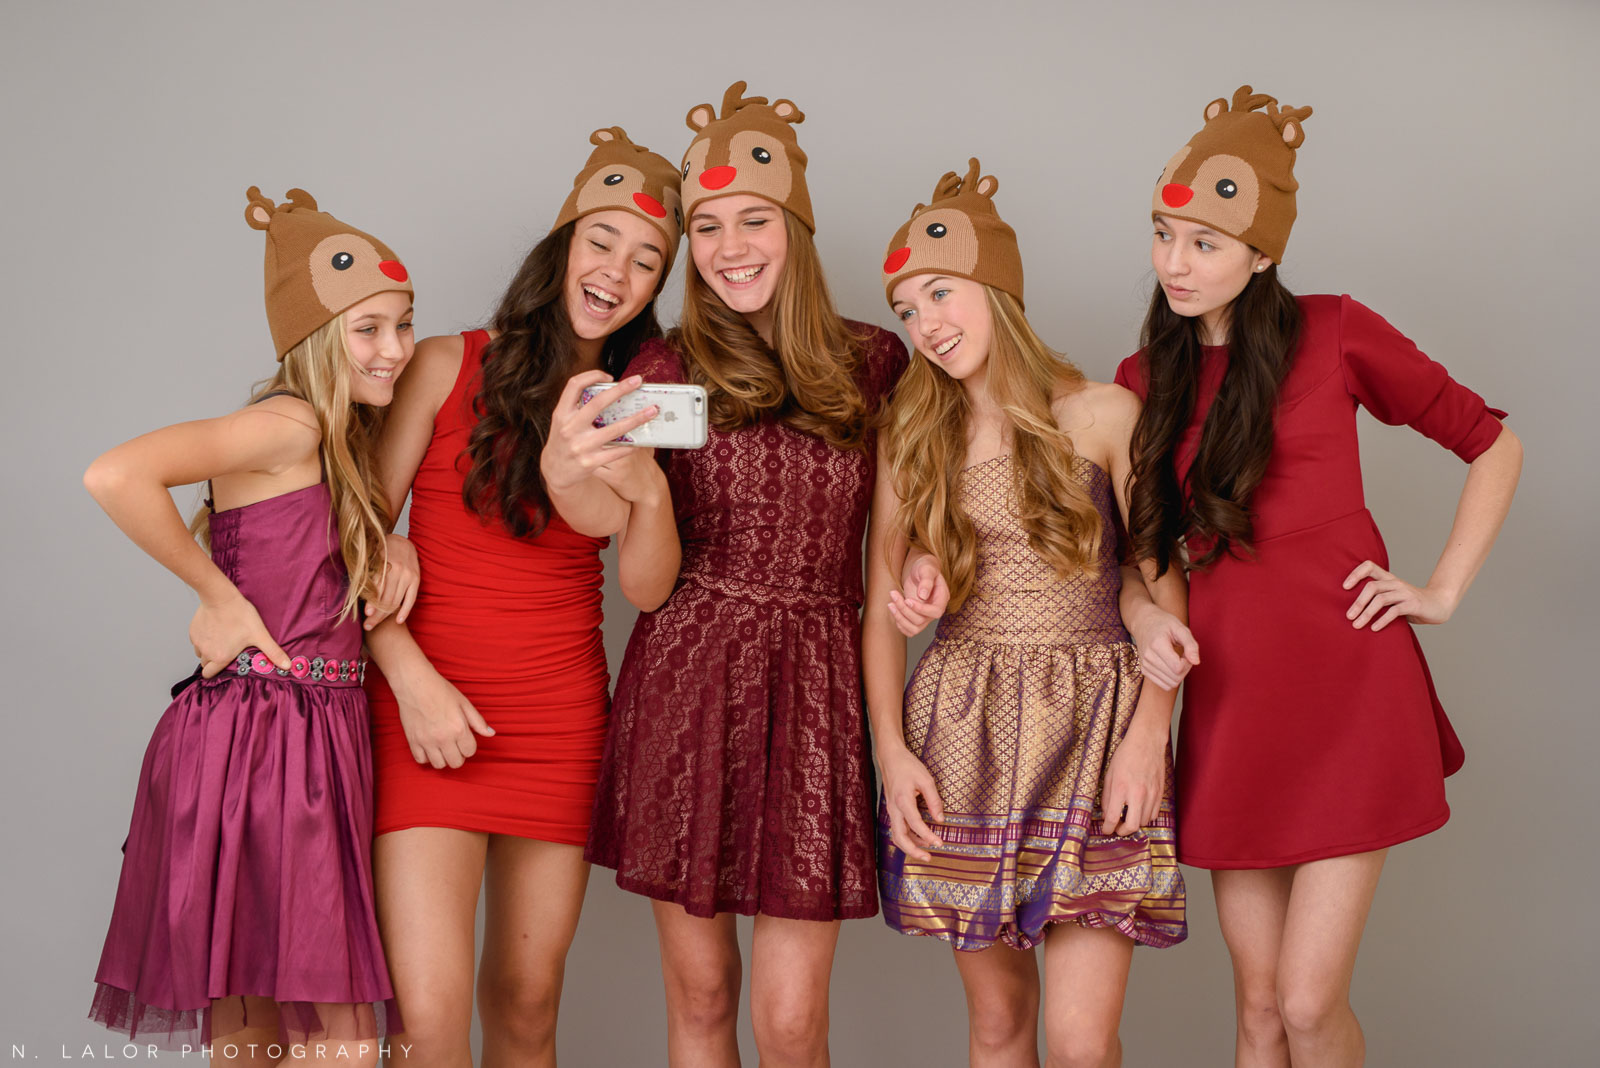 Girls taking a selfie in their holiday dresses. Photoshoot for Stella M'Lia by N. Lalor Photography in Greenwich, Connecticut.